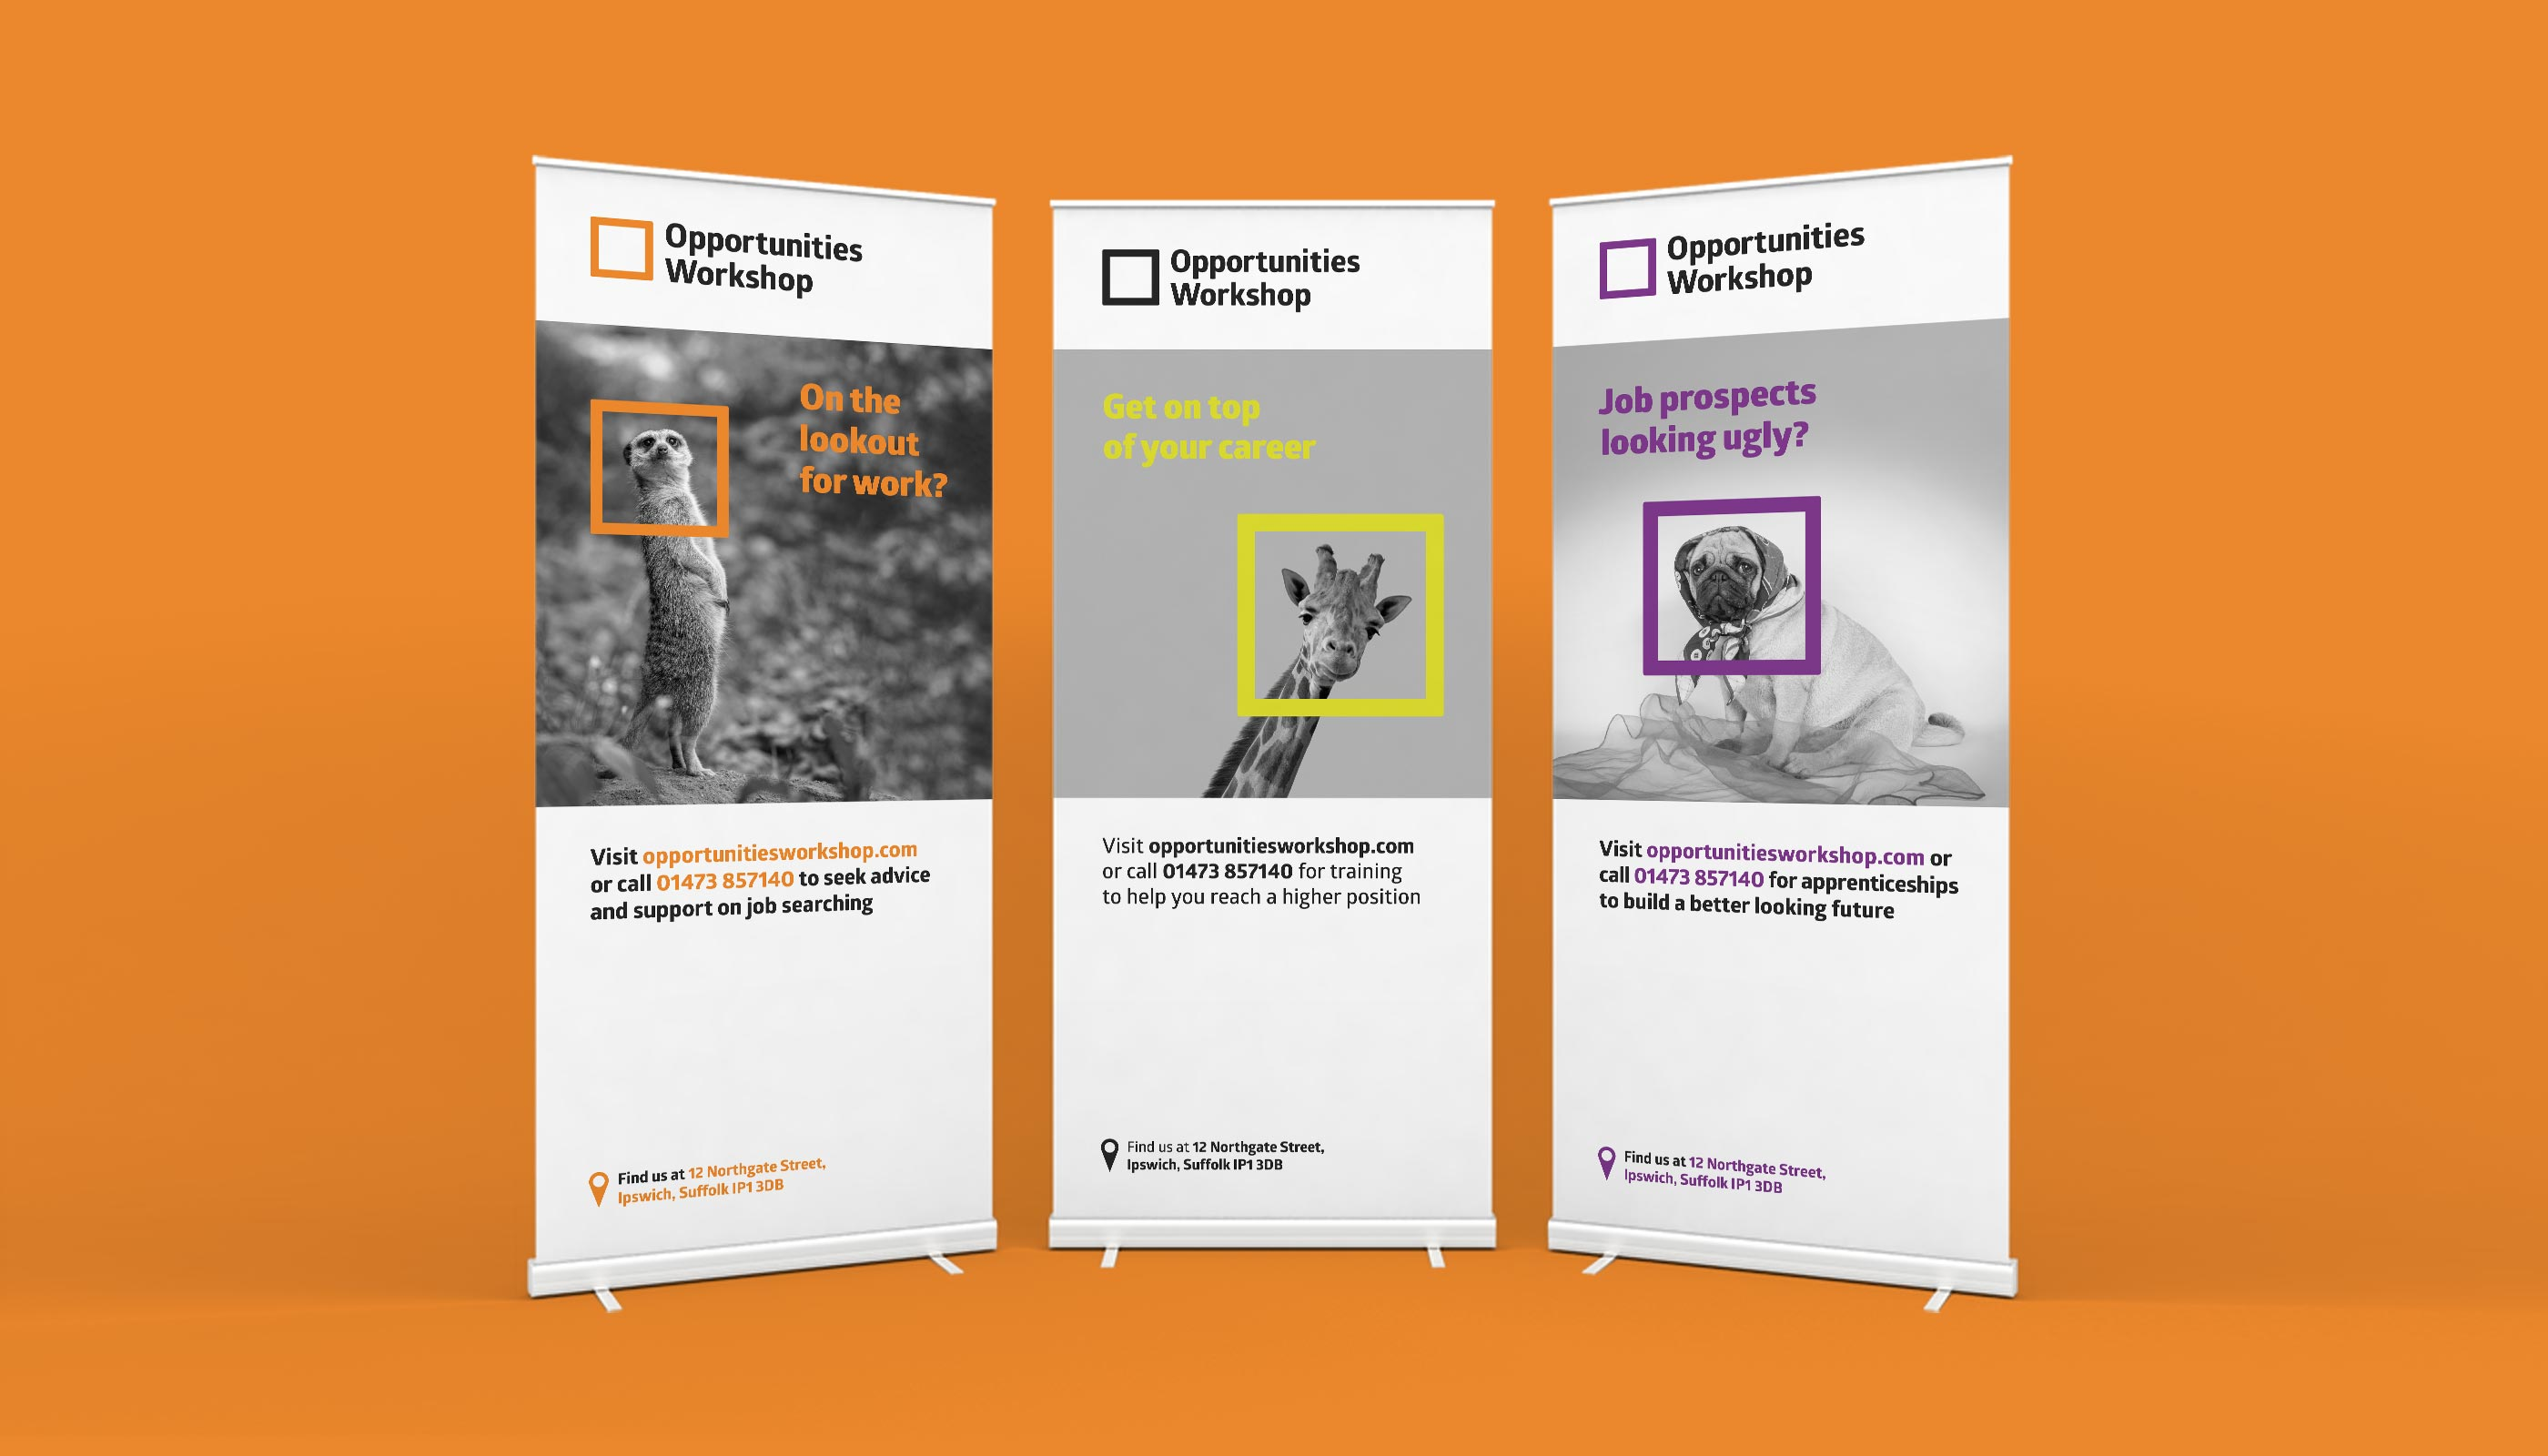 Roller banner design and print for Opportunities Workshop in Ipswich, Suffolk.